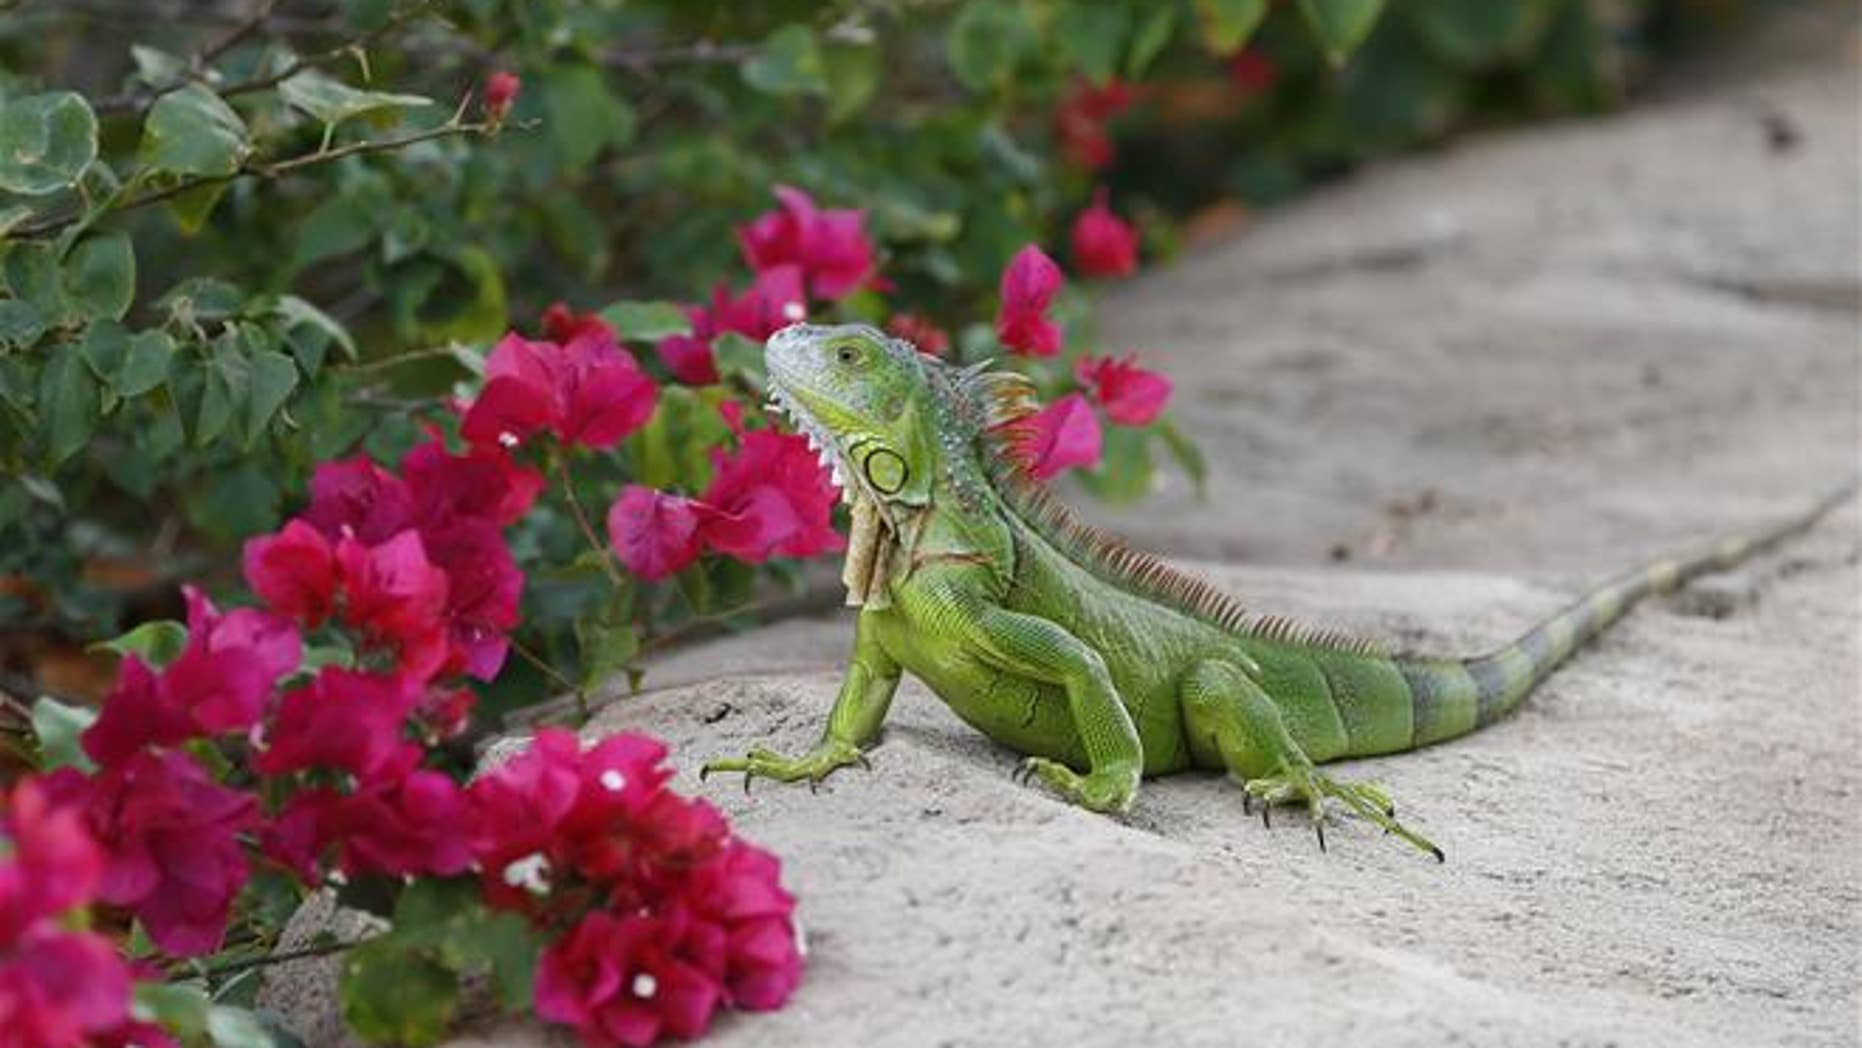 A green iguana checks out the flowers on a Bougainvillea plant in Hollywood, Fla.